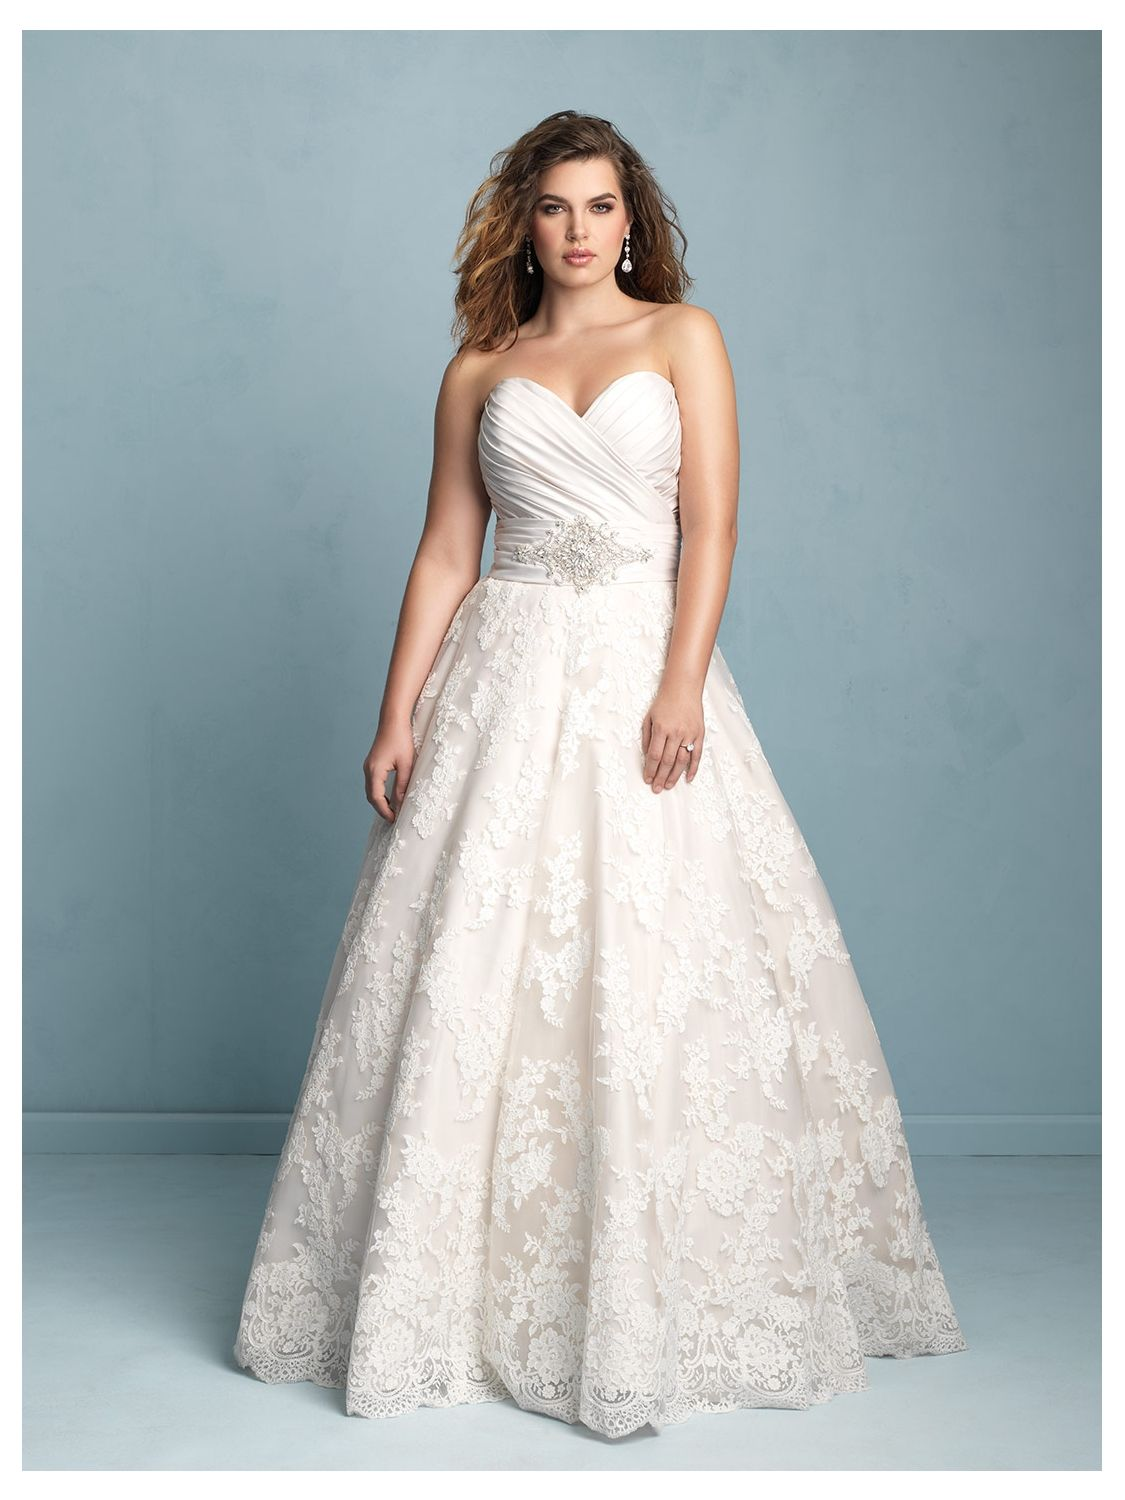 Allure women wedding dress style w house of brides wedding